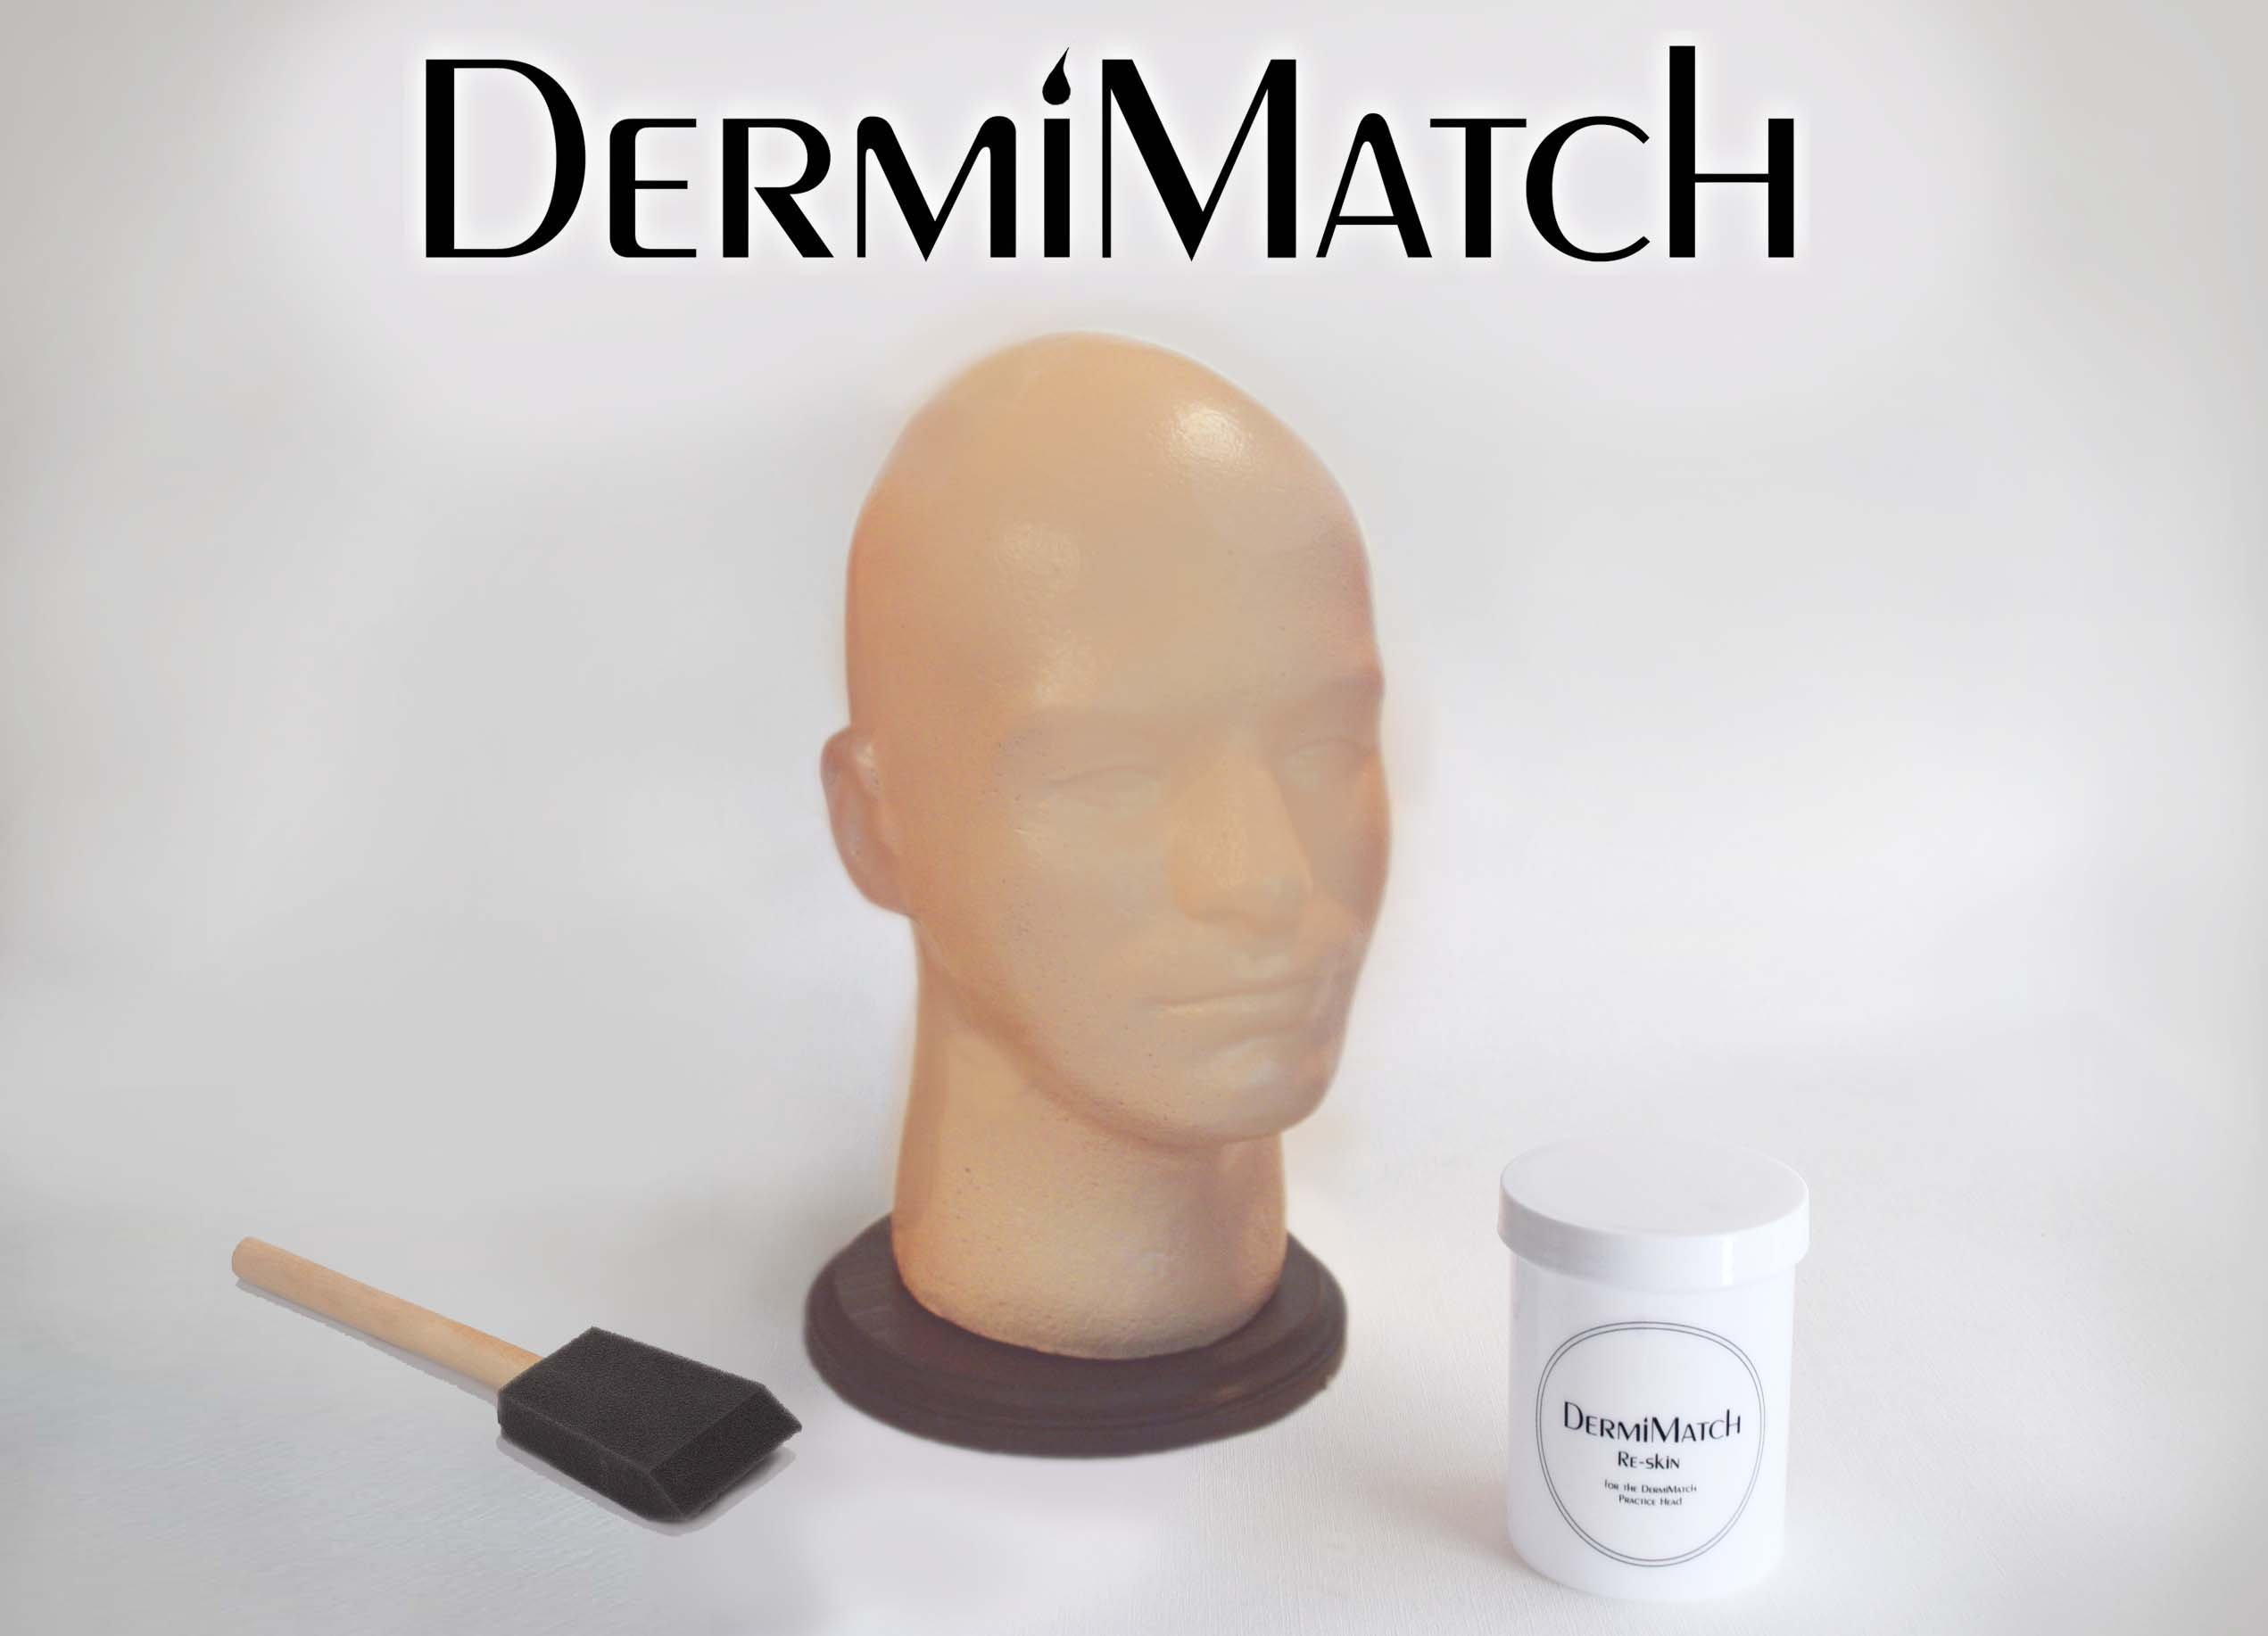 Practice Head + Re-skin Kit for smp scalp micropigmentation by DermiMatch